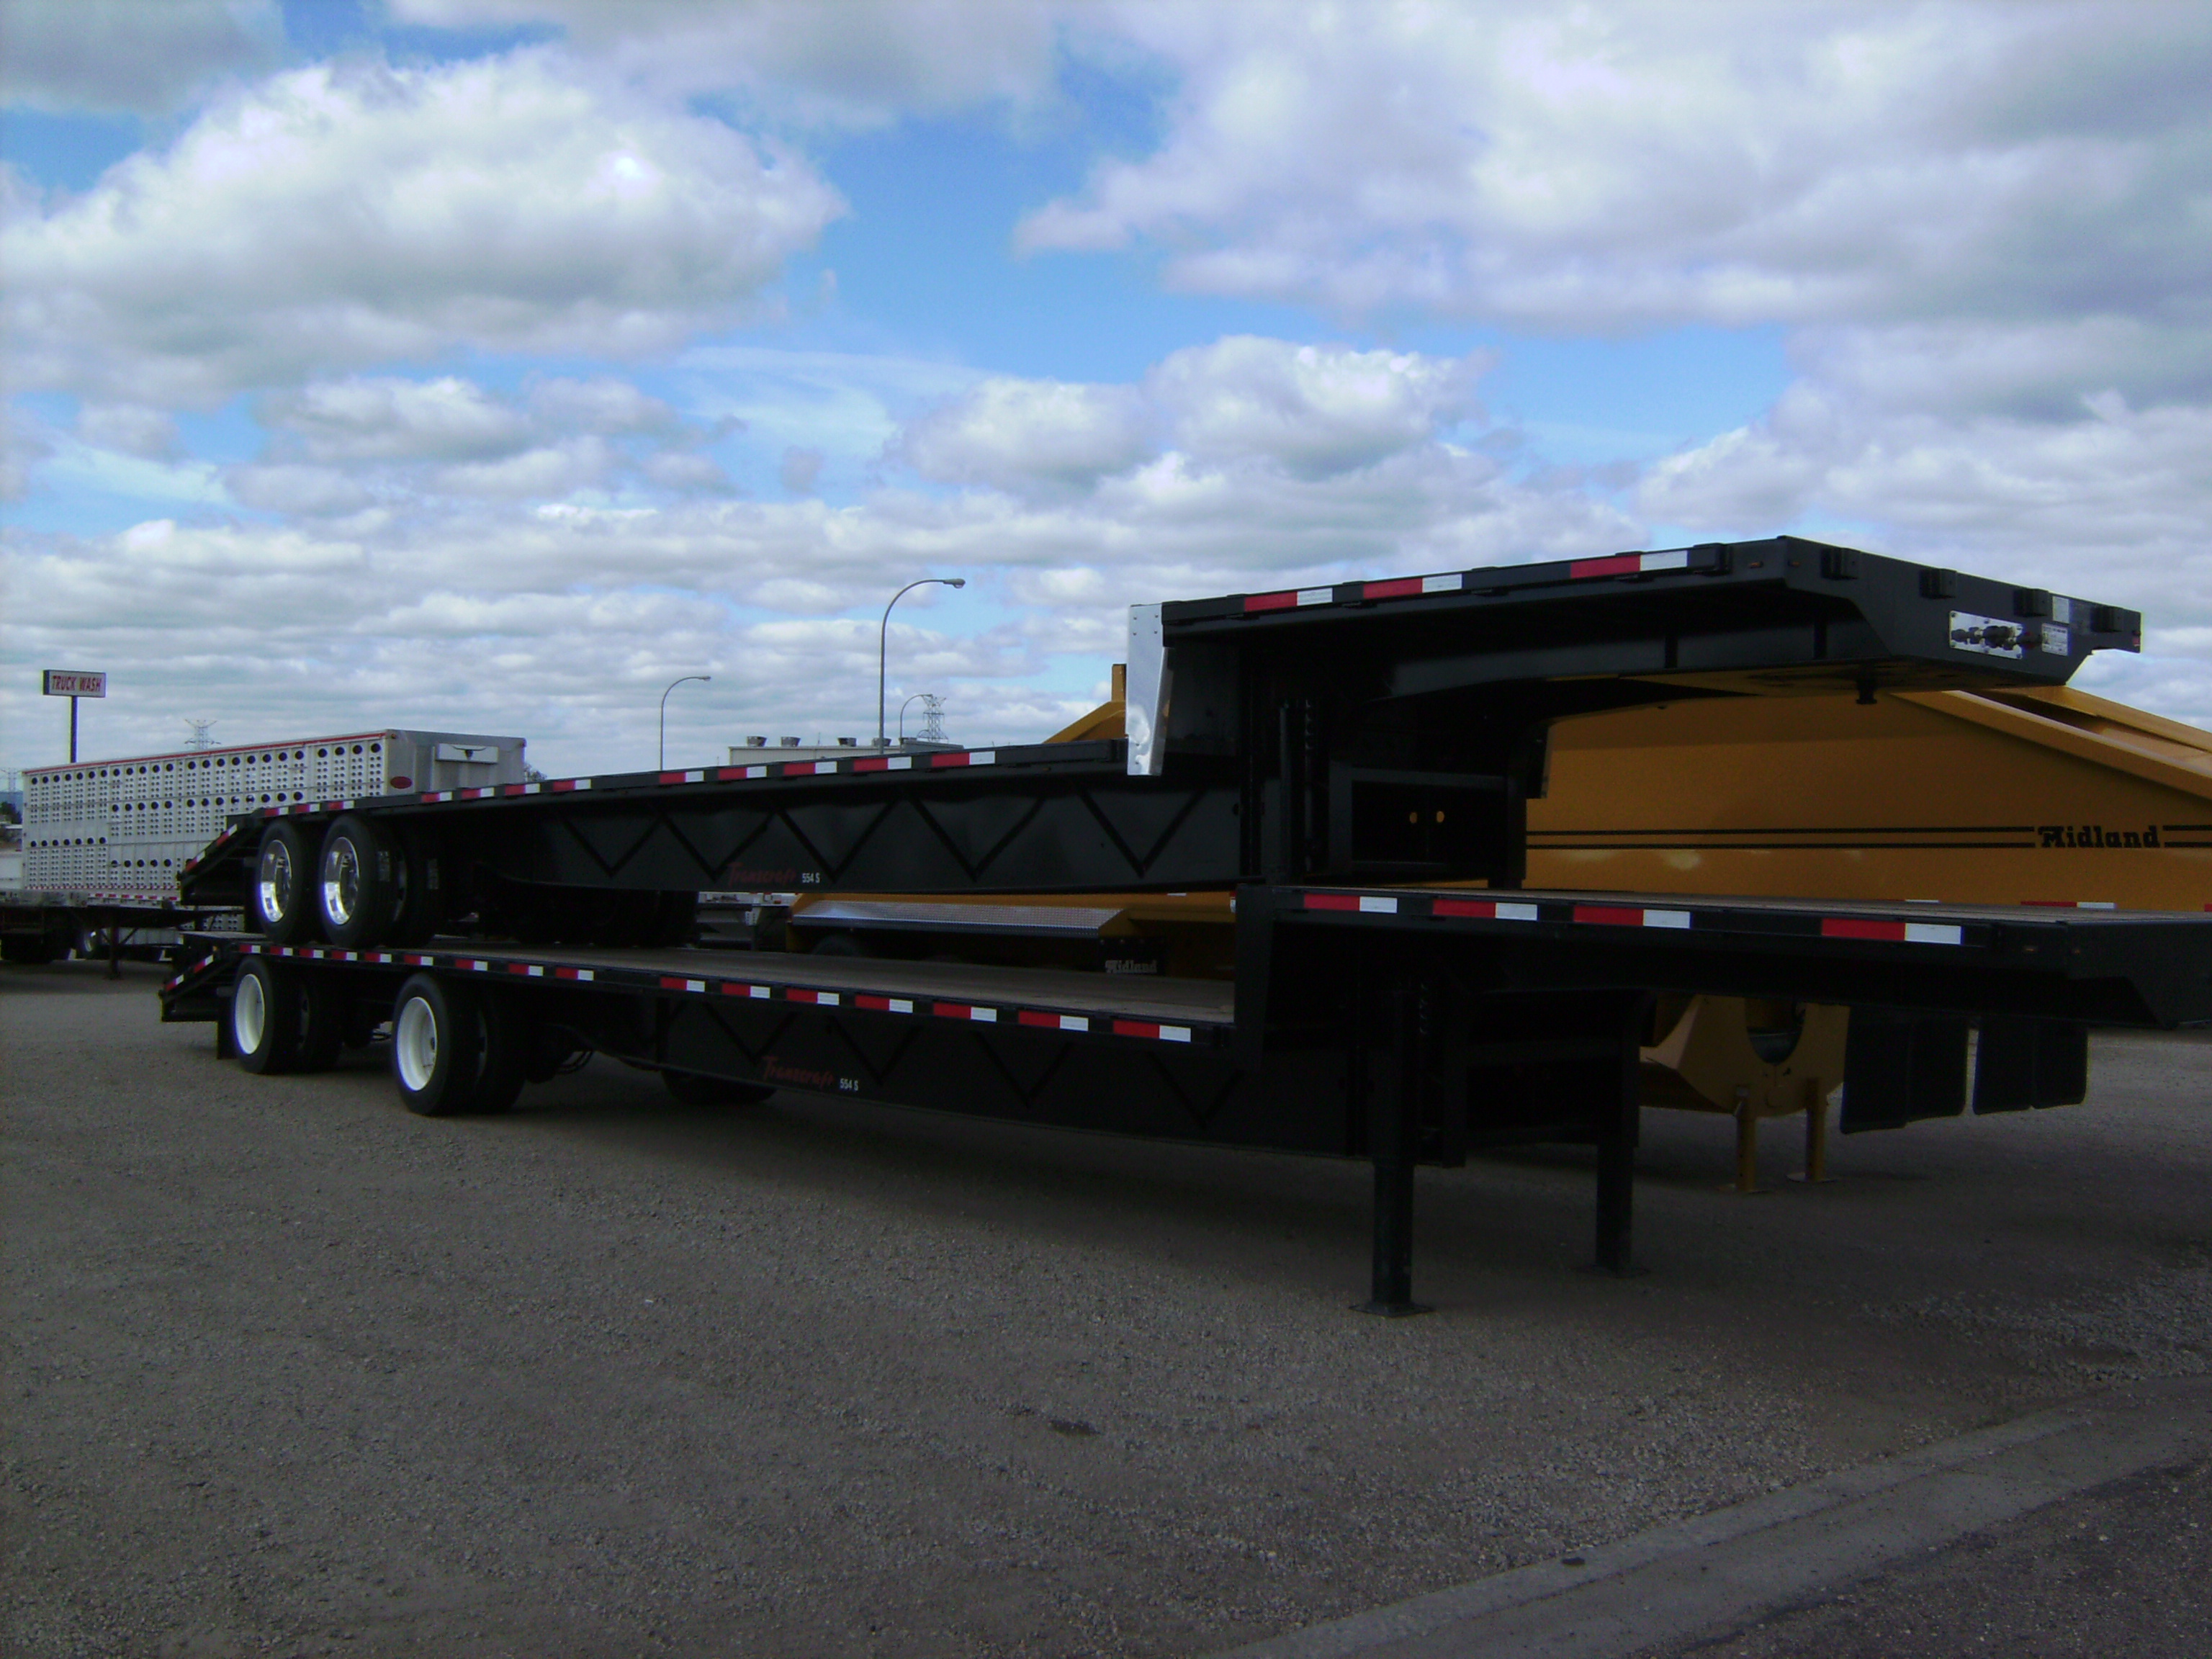 http://www.semitrailersalesandleasing.com/image/cache/2018_Transcraft_48x102_dropdeck_w_ramps_001.JPG Image